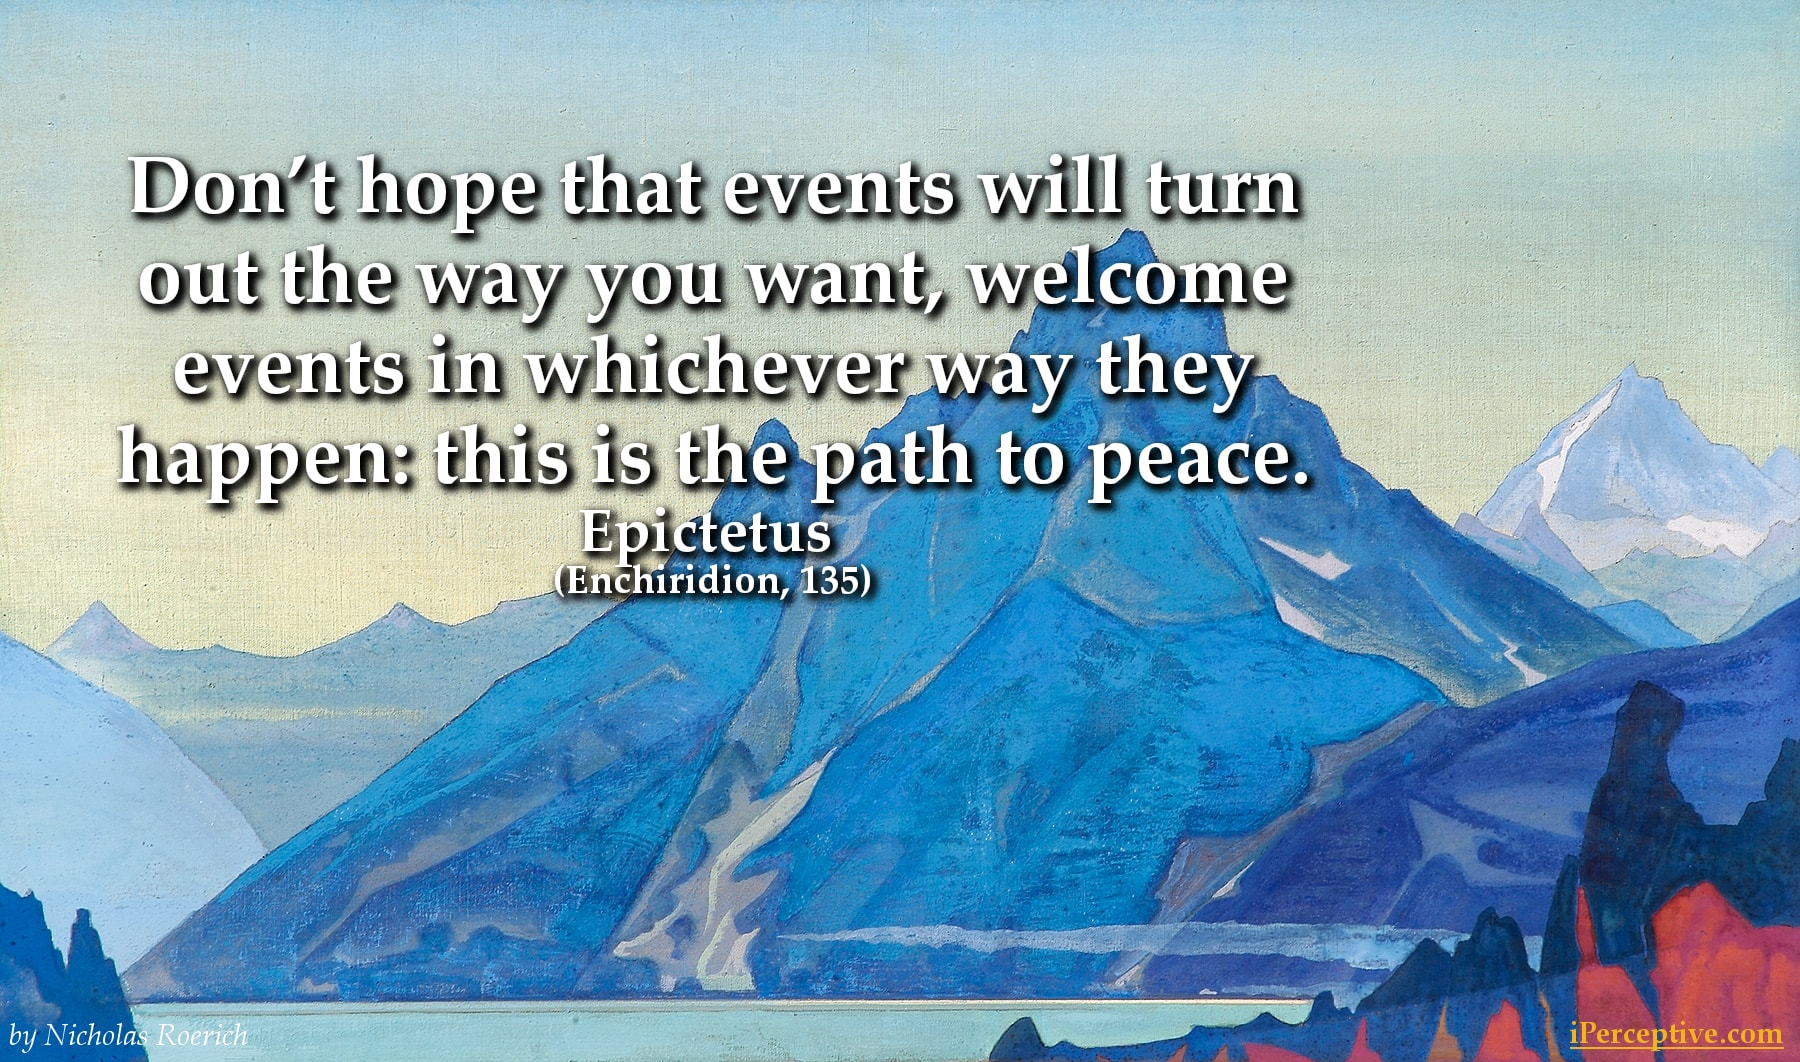 Epictetus Stoic Quote: Don't hope that events will turn out the way...